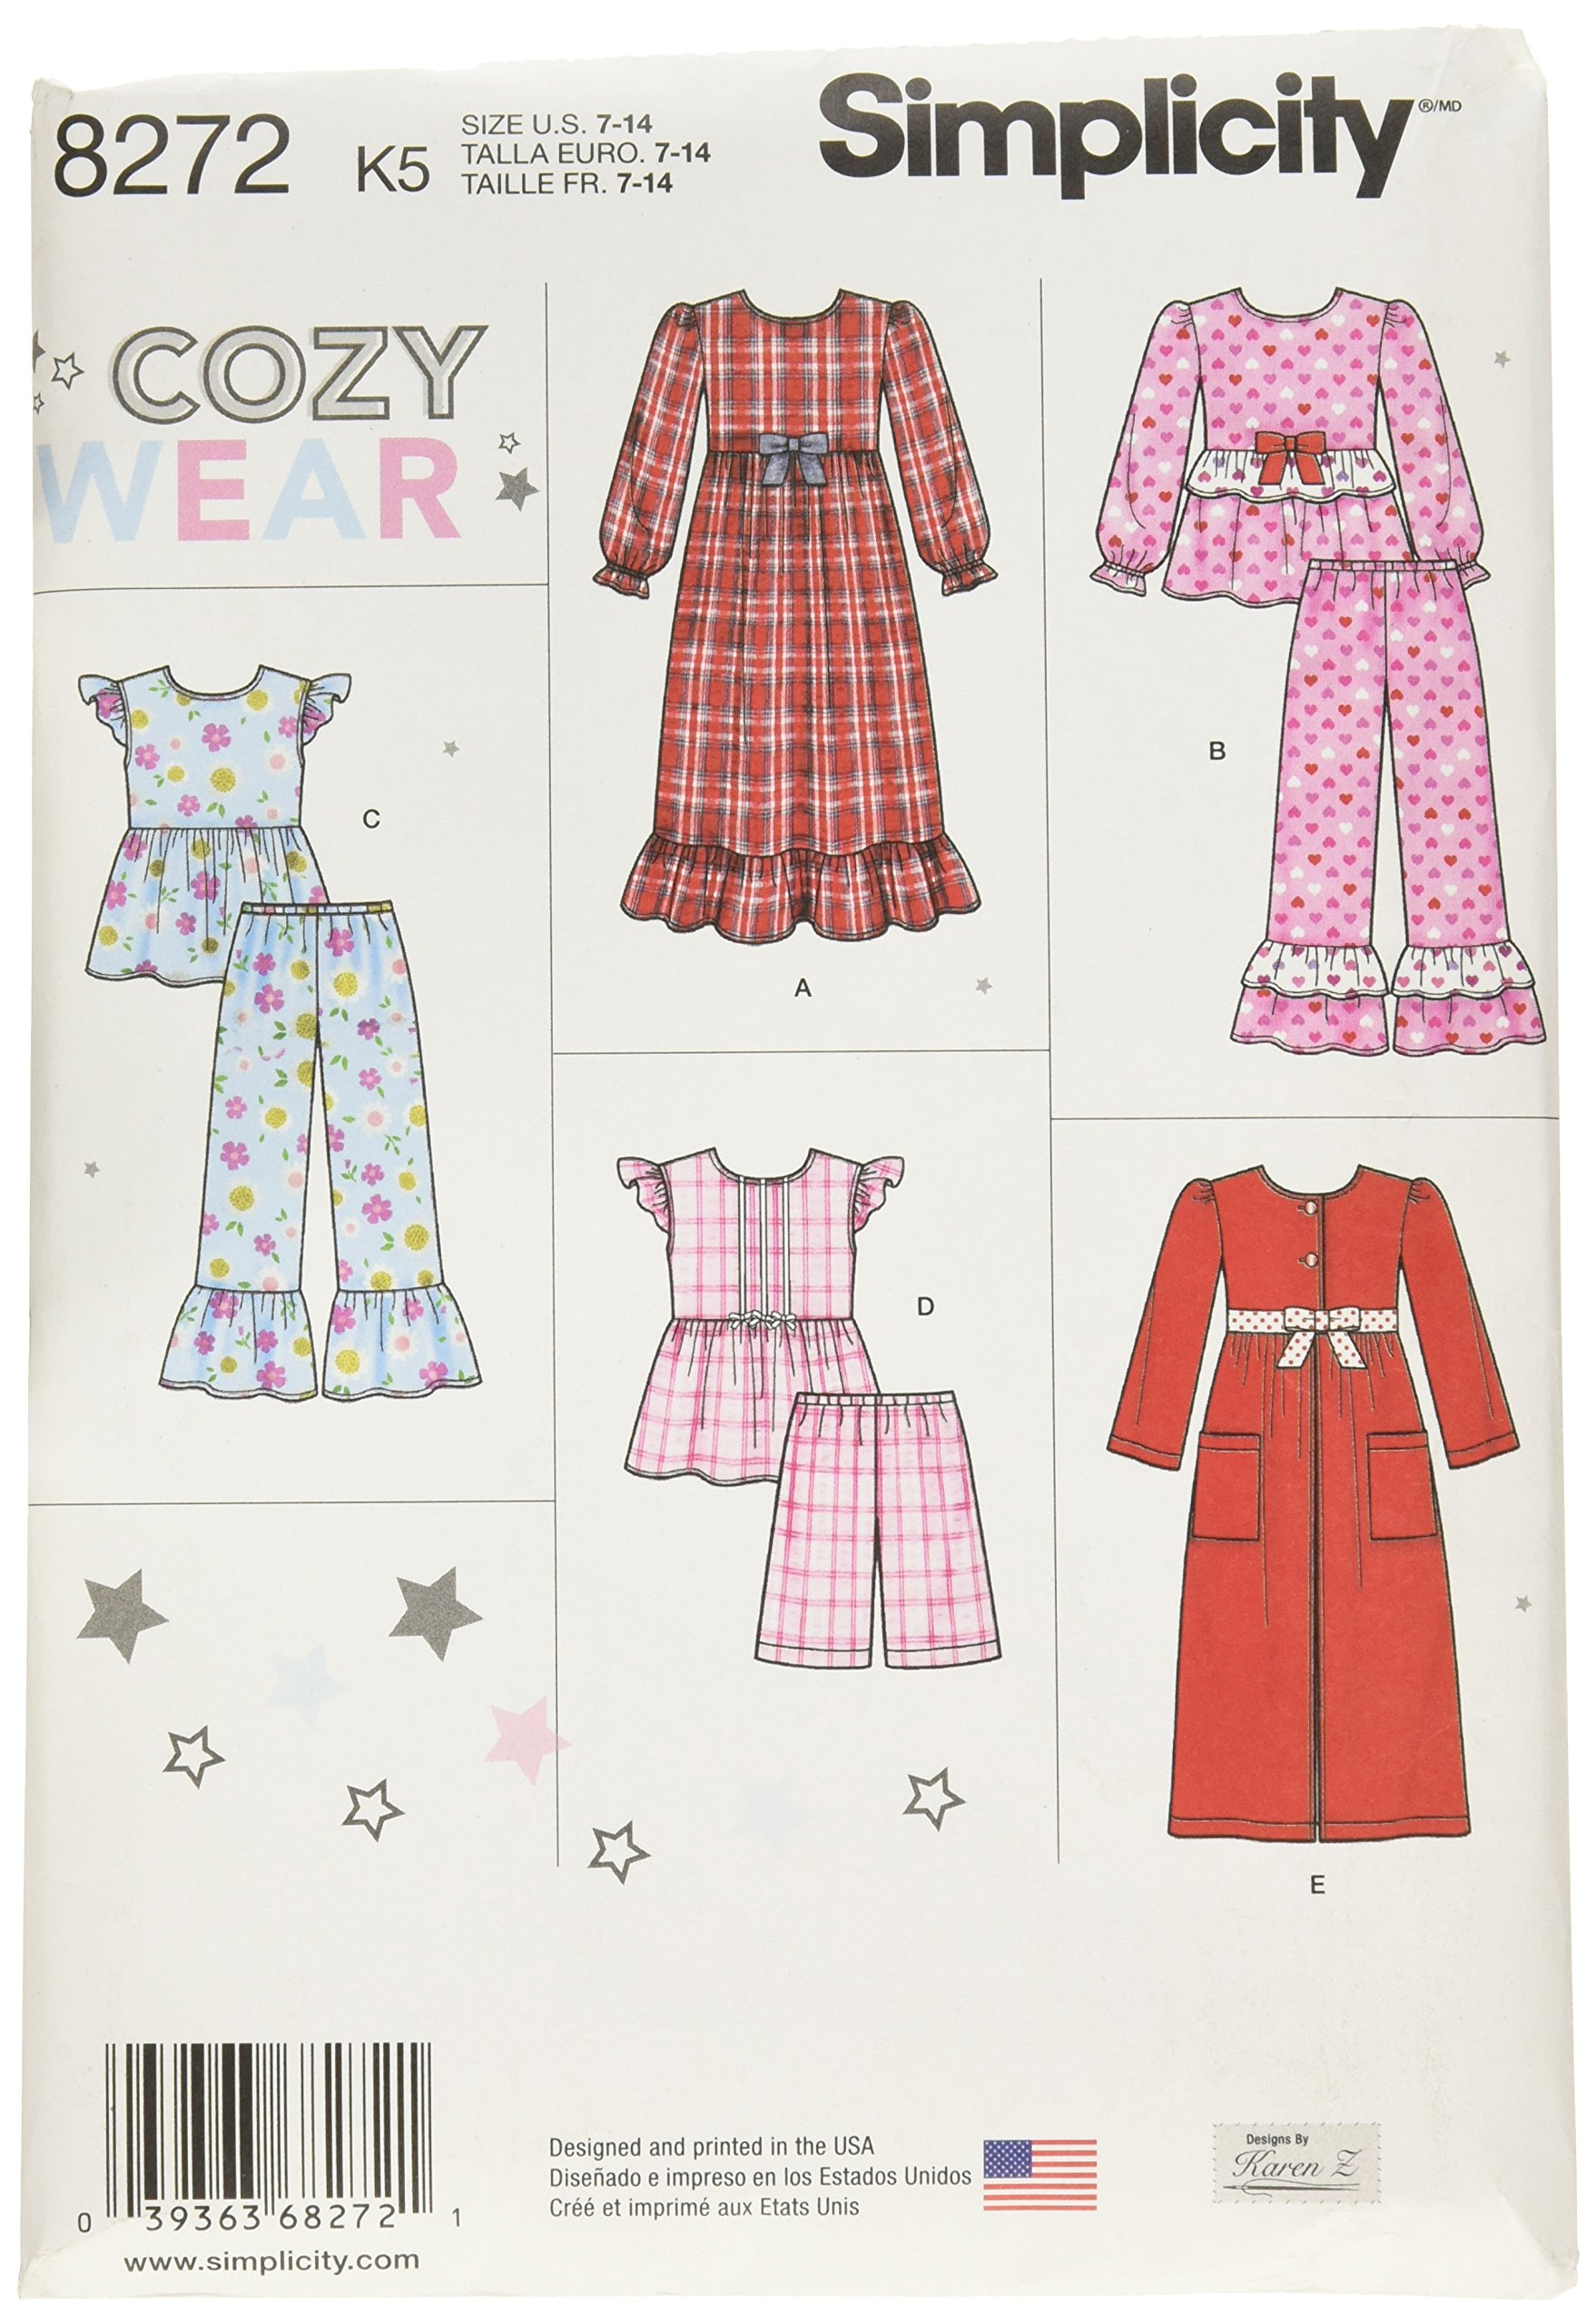 Simplicity Pattern 8272 K5 (7-8-10-12-14) Child's and Girl's Sleepwear and Robe, Paper, White, 22 x 15 x 1 cm